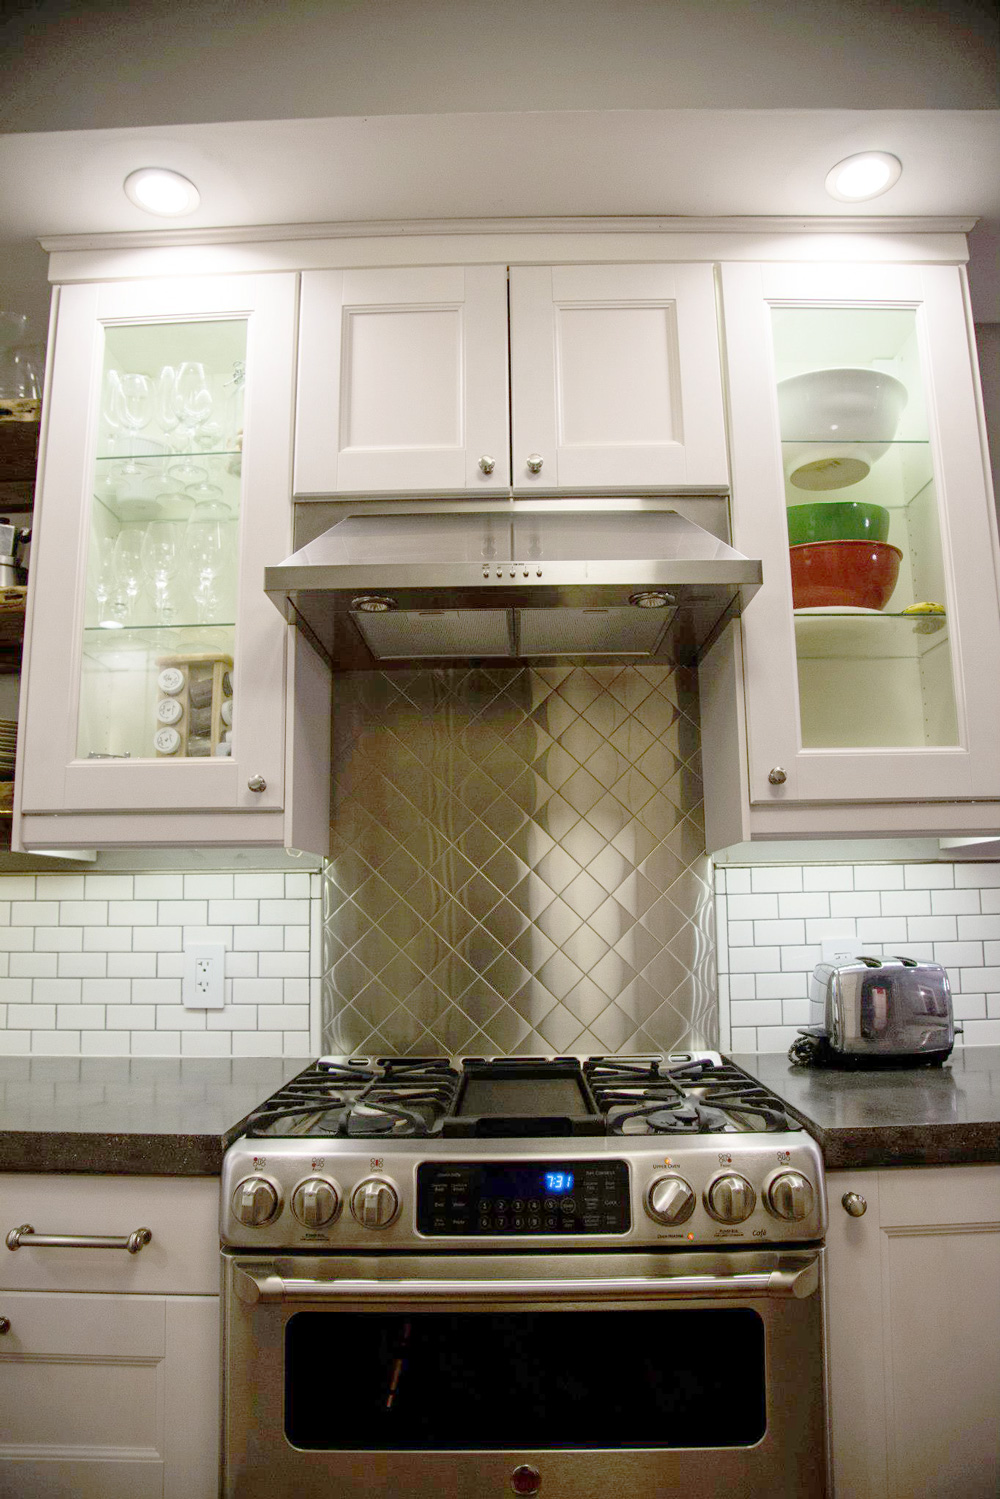 Kitchen Range & Stainless Steel Backsplash